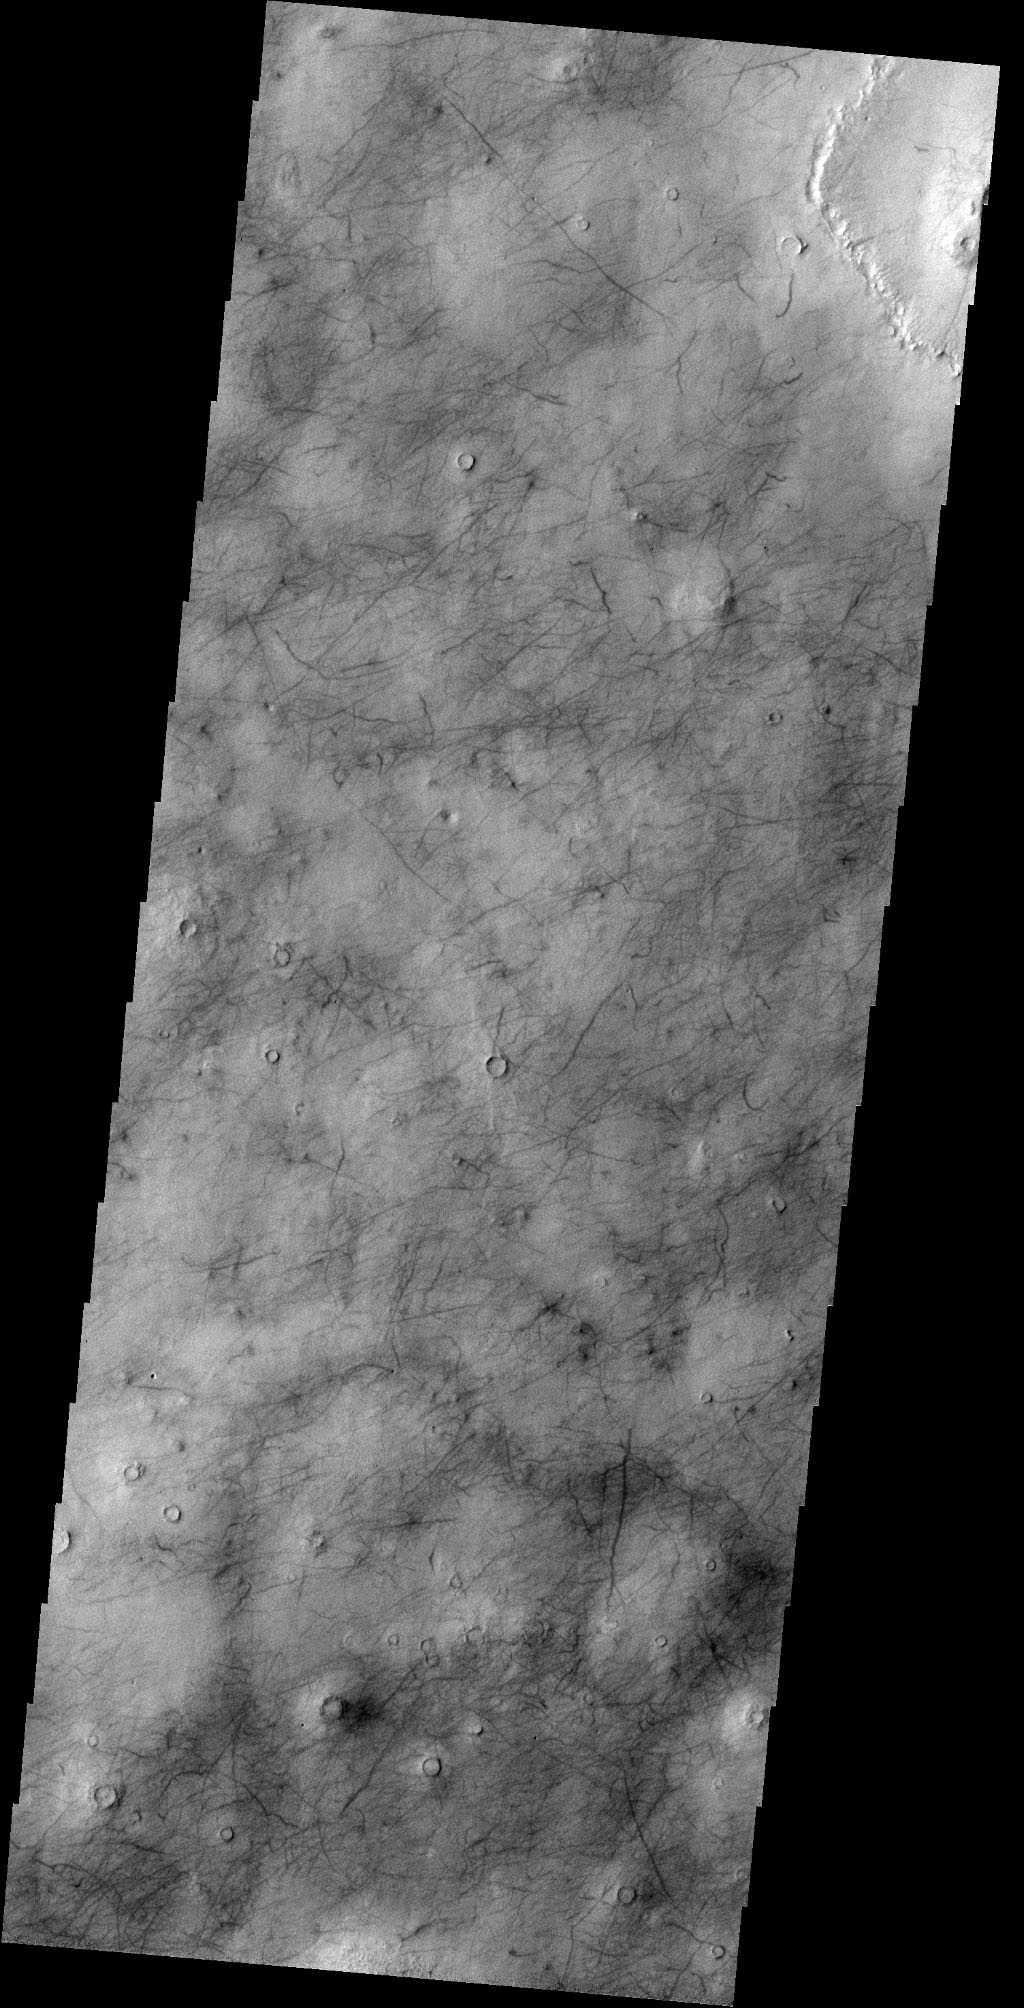 This image captured by NASA's 2001 Mars Odyssey spacecraft show the dark marks left behind after the passage of a dust devil cover this region of Utopia Planitia.